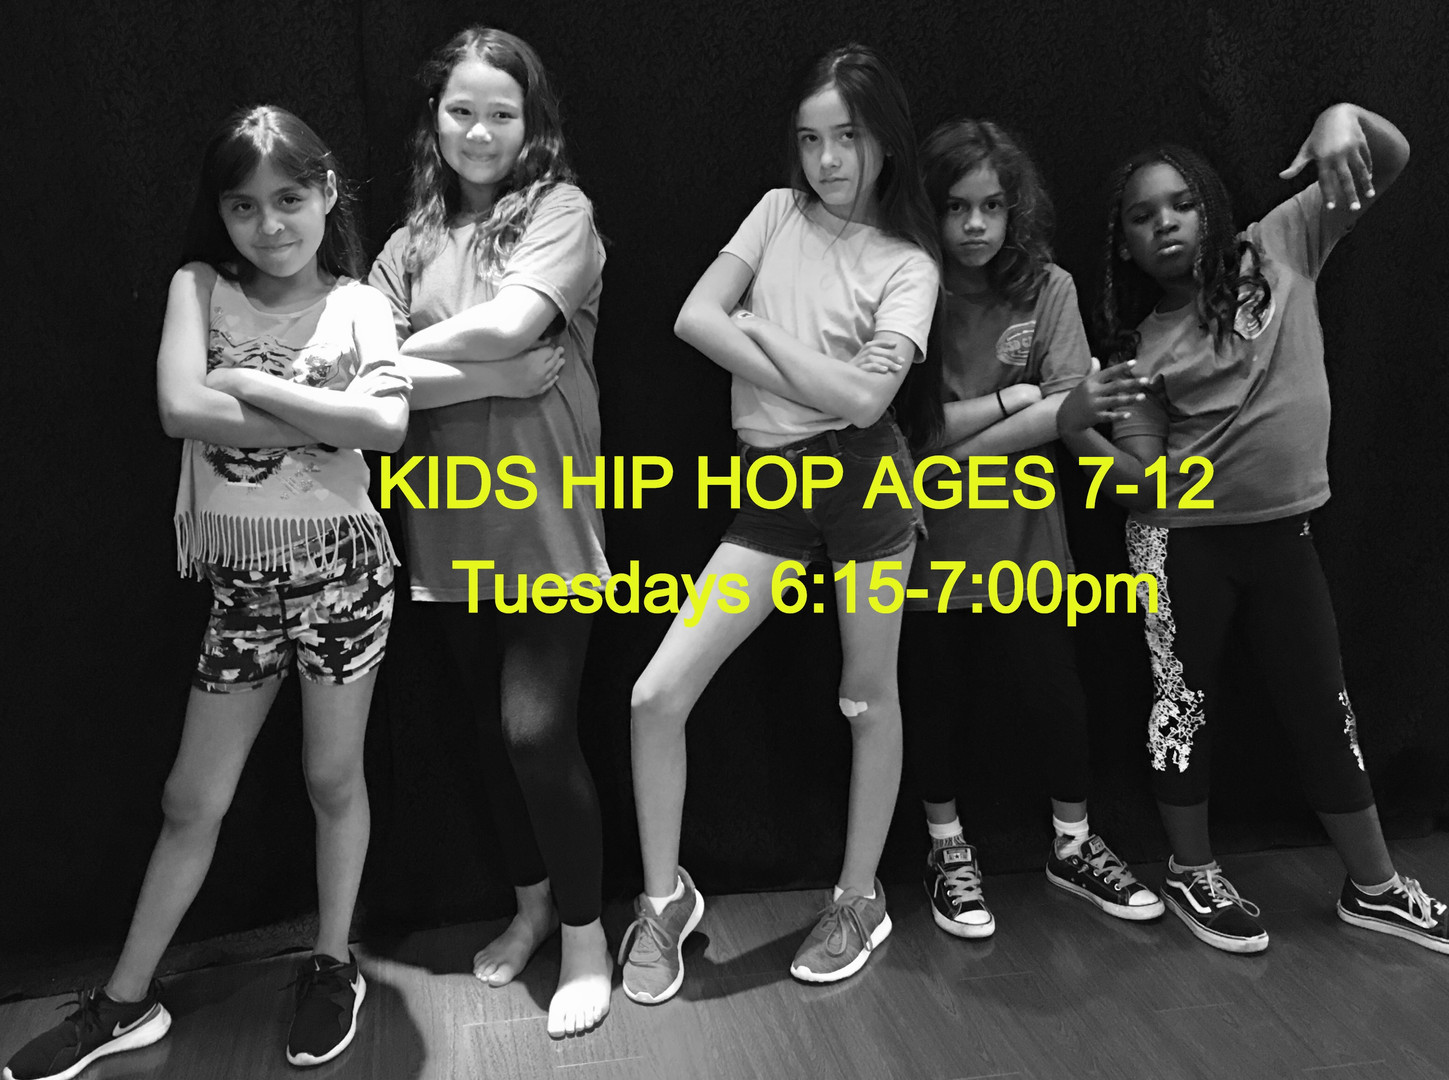 Kids Hip Hop Ages 7-12